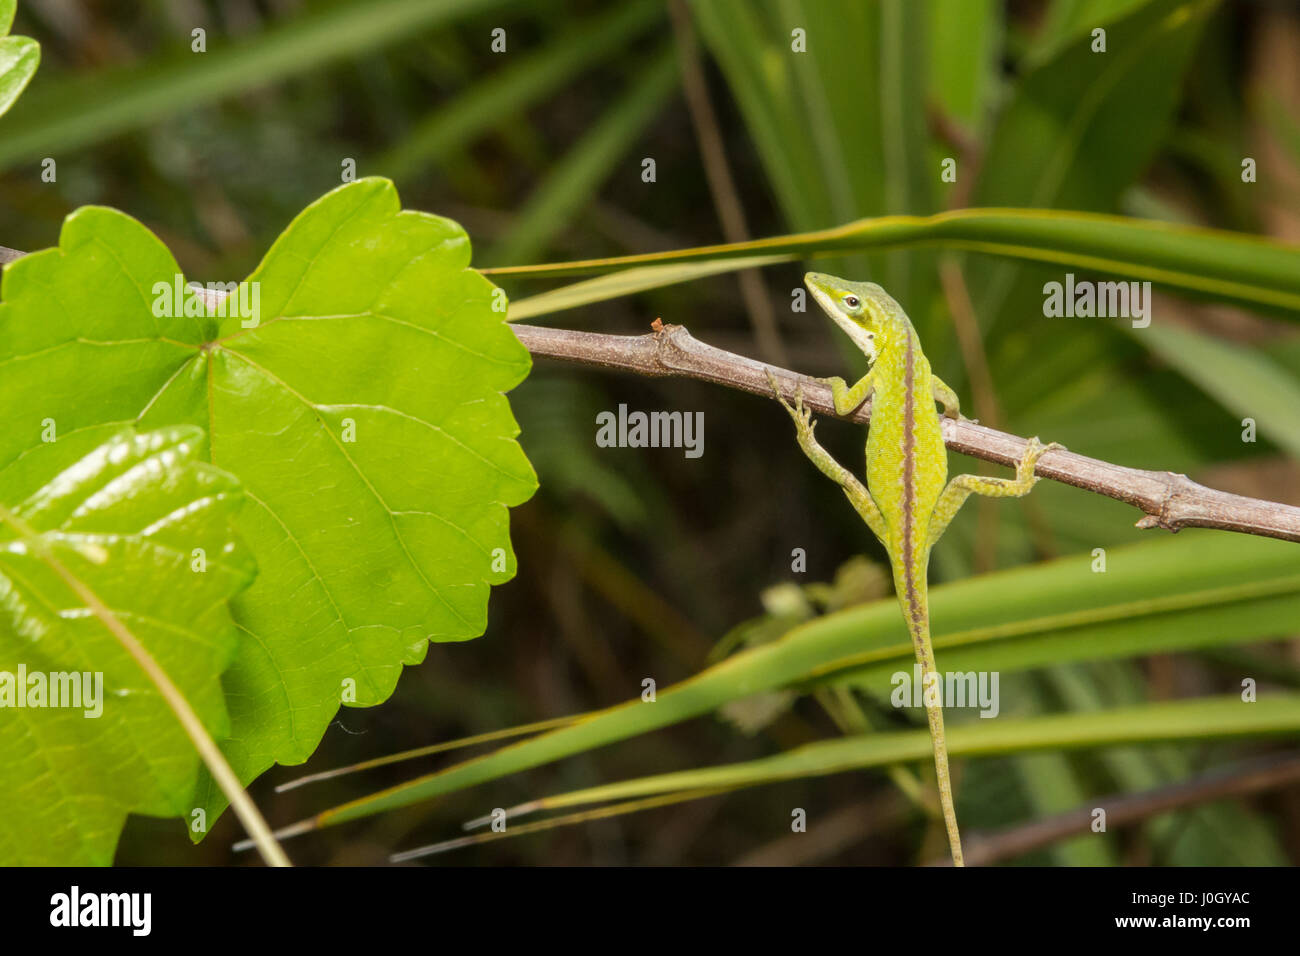 A Green Anole hanging from a branch at Apalachicola National Forest. - Stock Image